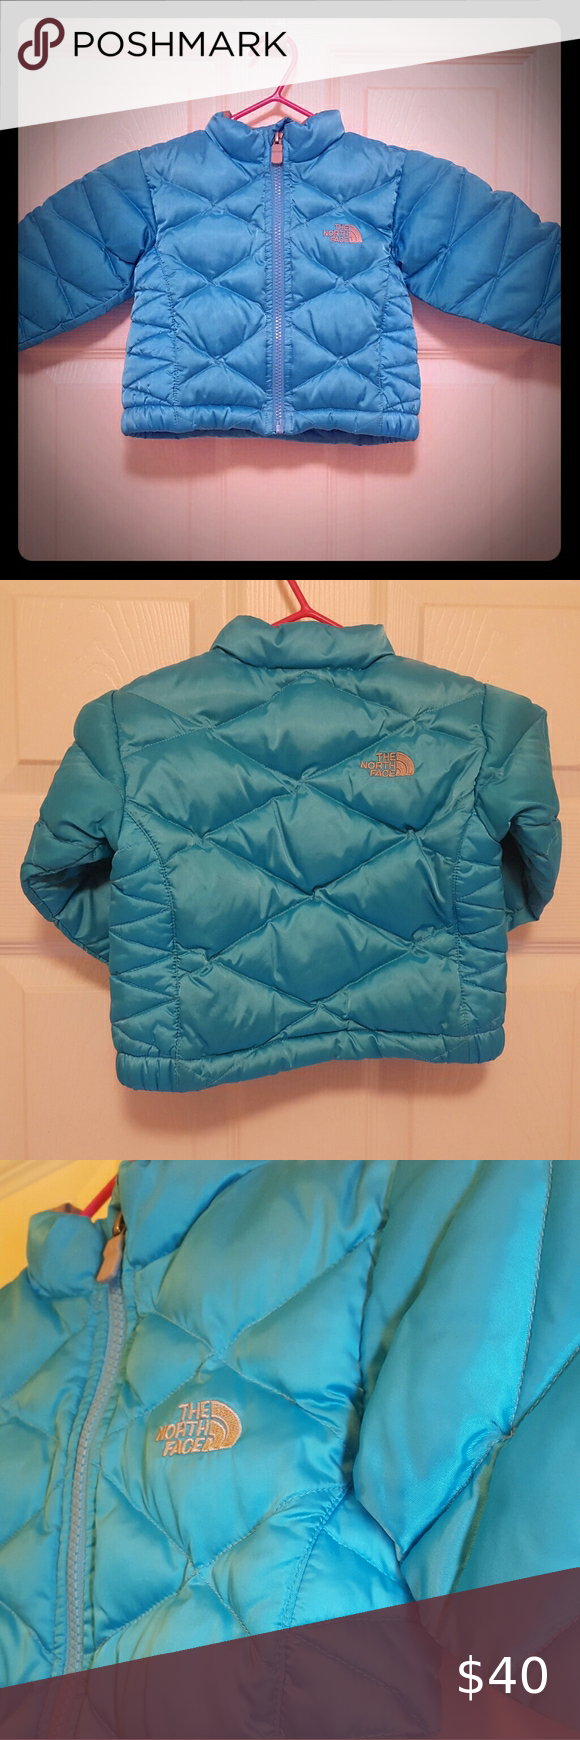 6 12m Baby Blue North Face Puffy Jacket Infant North Face Puffy Jacket Puffy Jacket North Face Jacket [ 1740 x 580 Pixel ]